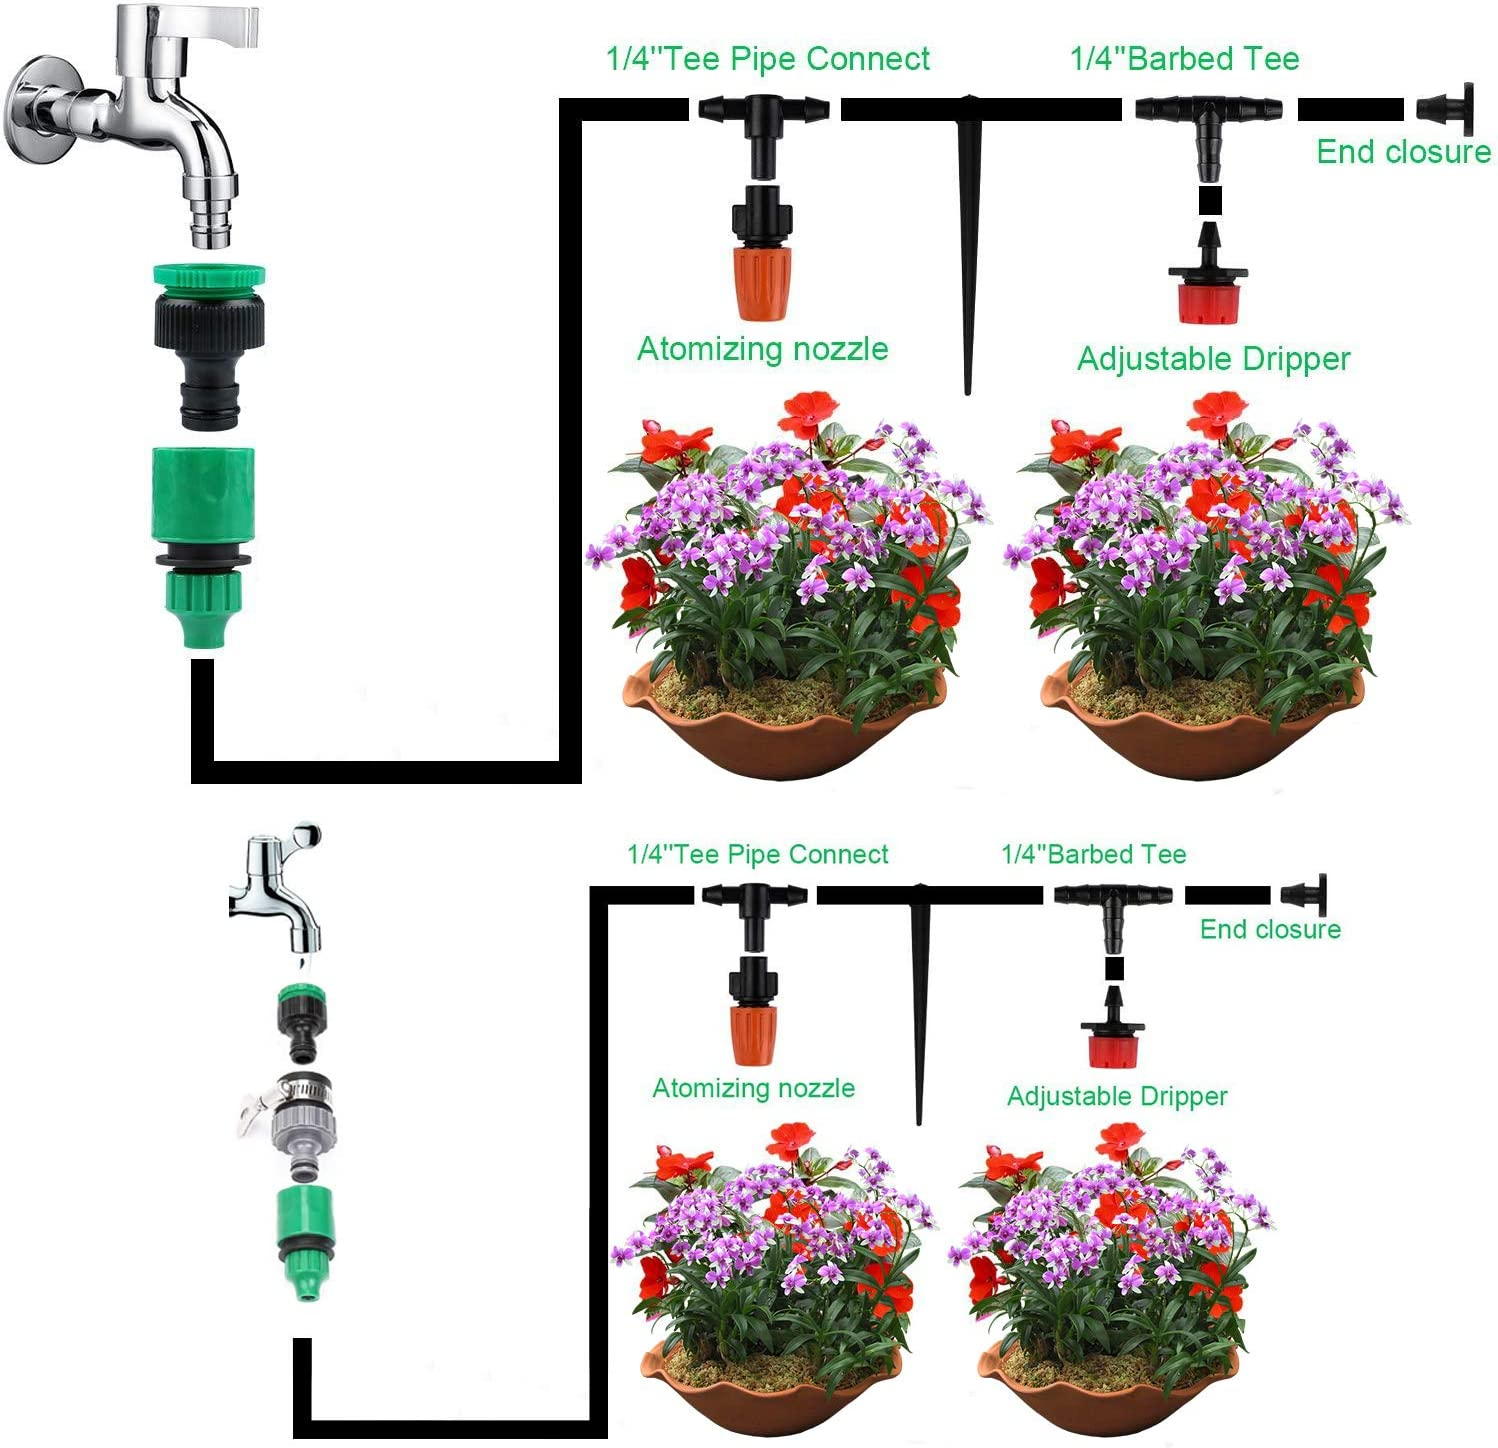 PiscatorZone Drip Irrigation Kits,98ft Garden Irrigation System with 1 4 Blank Distribution Tubing Watering Drip Kit,DIY Saving Water Automatic Irrigation Equipment Set 30m 98ft Irrigation Systemc